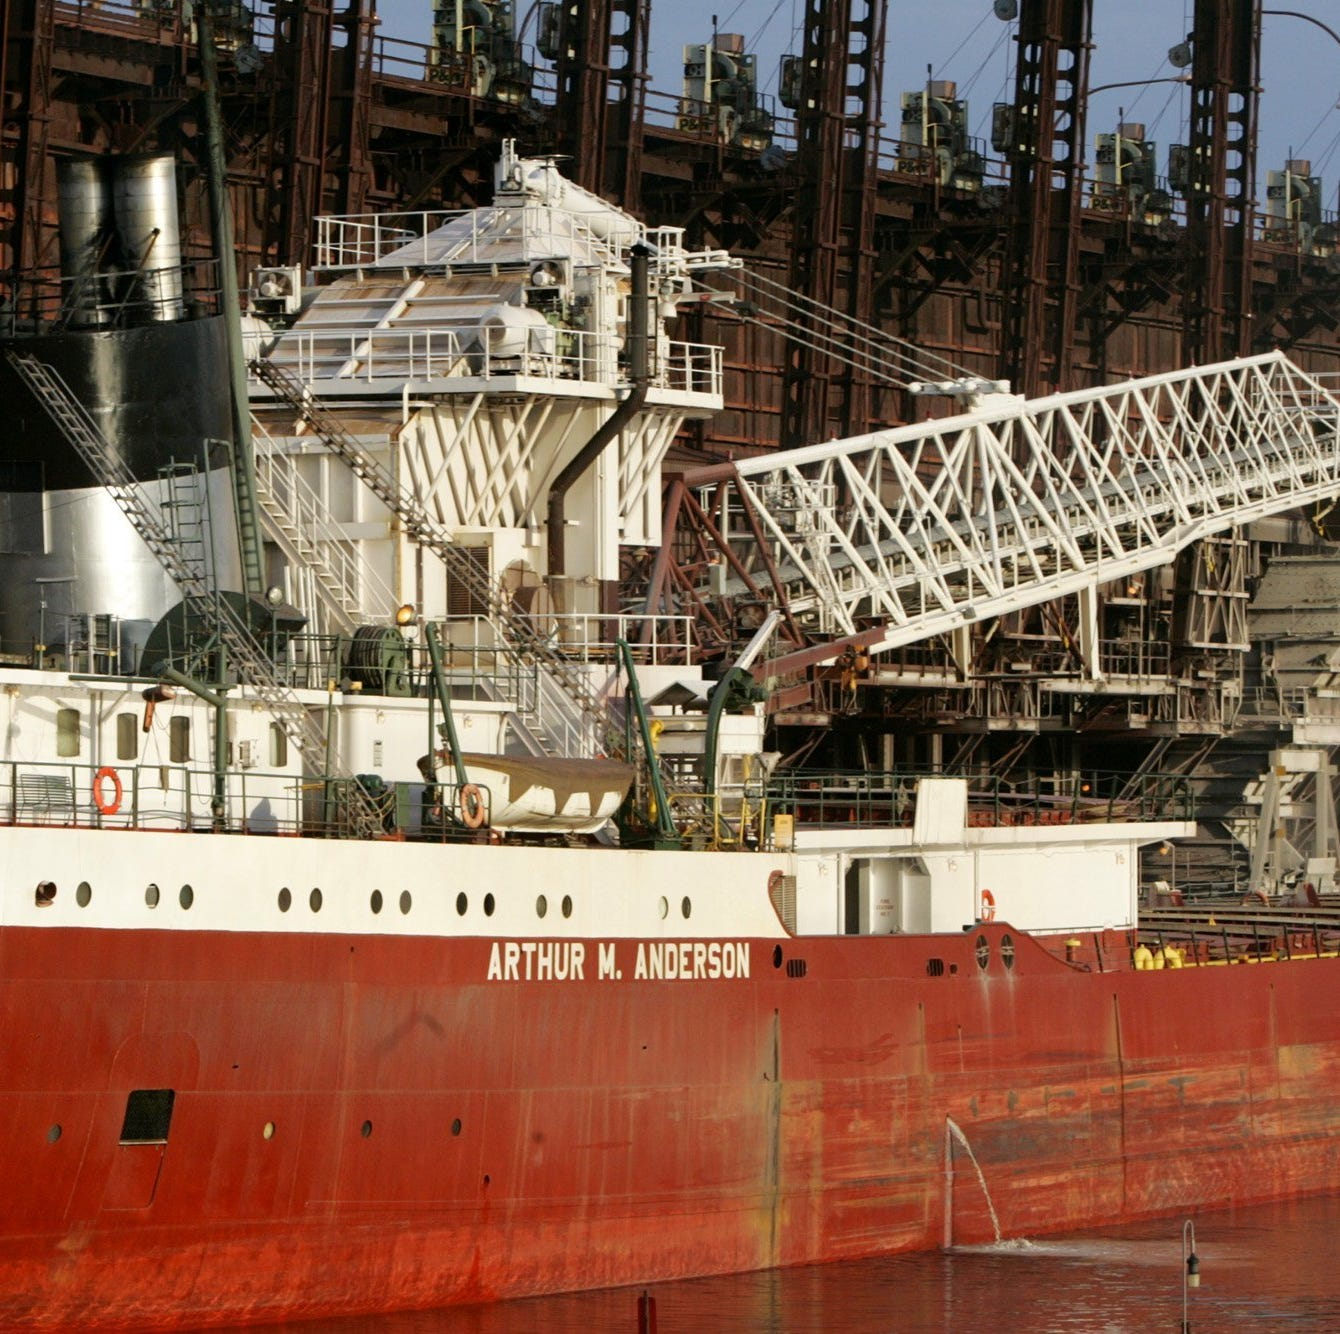 Report: Storied freighter Arthur M. Anderson returning to the Great Lakes